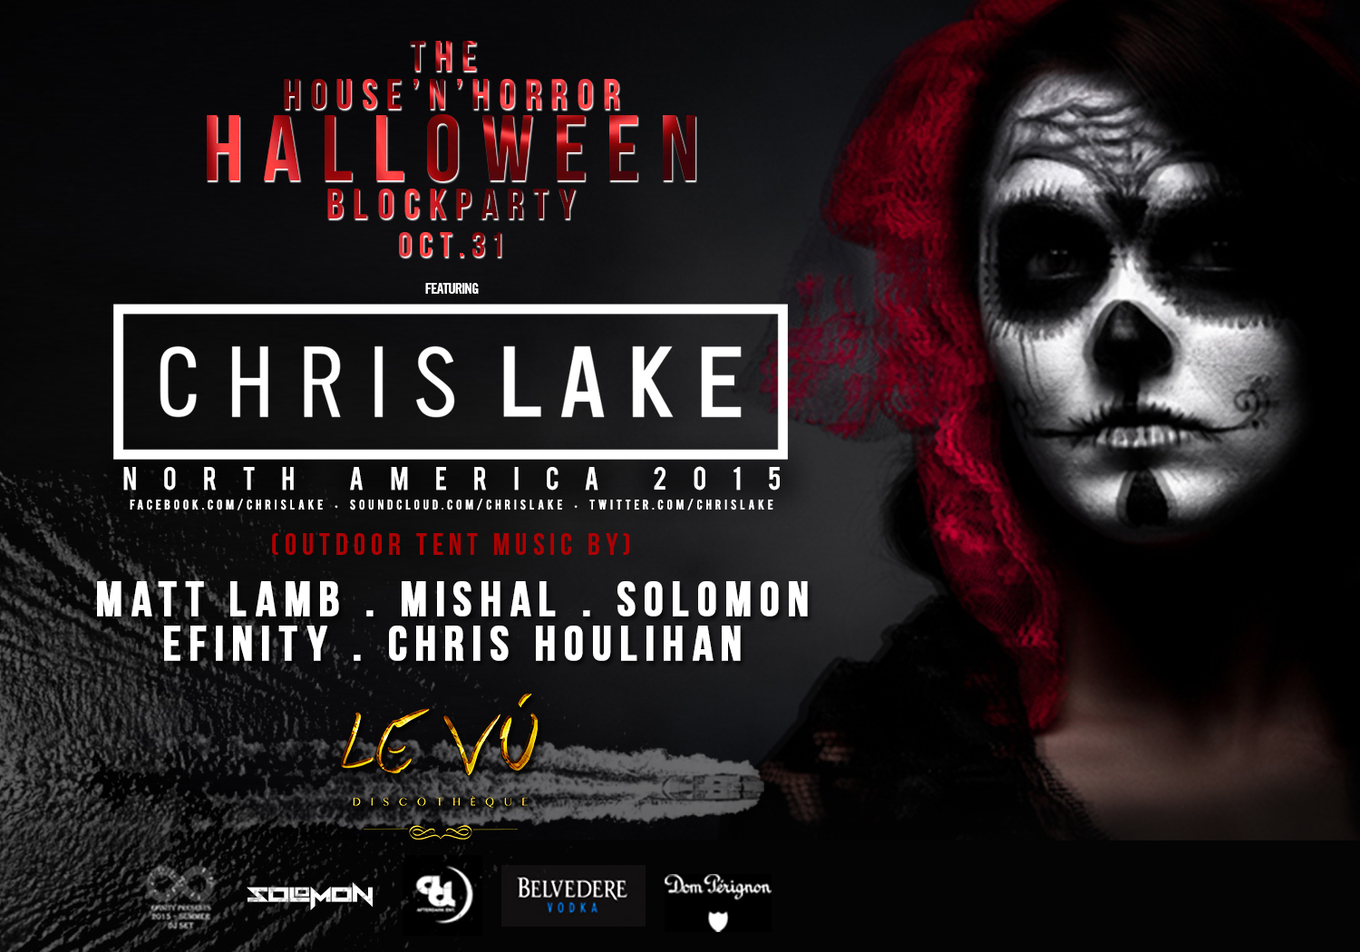 halloween block party at levu ft. chris lake - tickets - levu